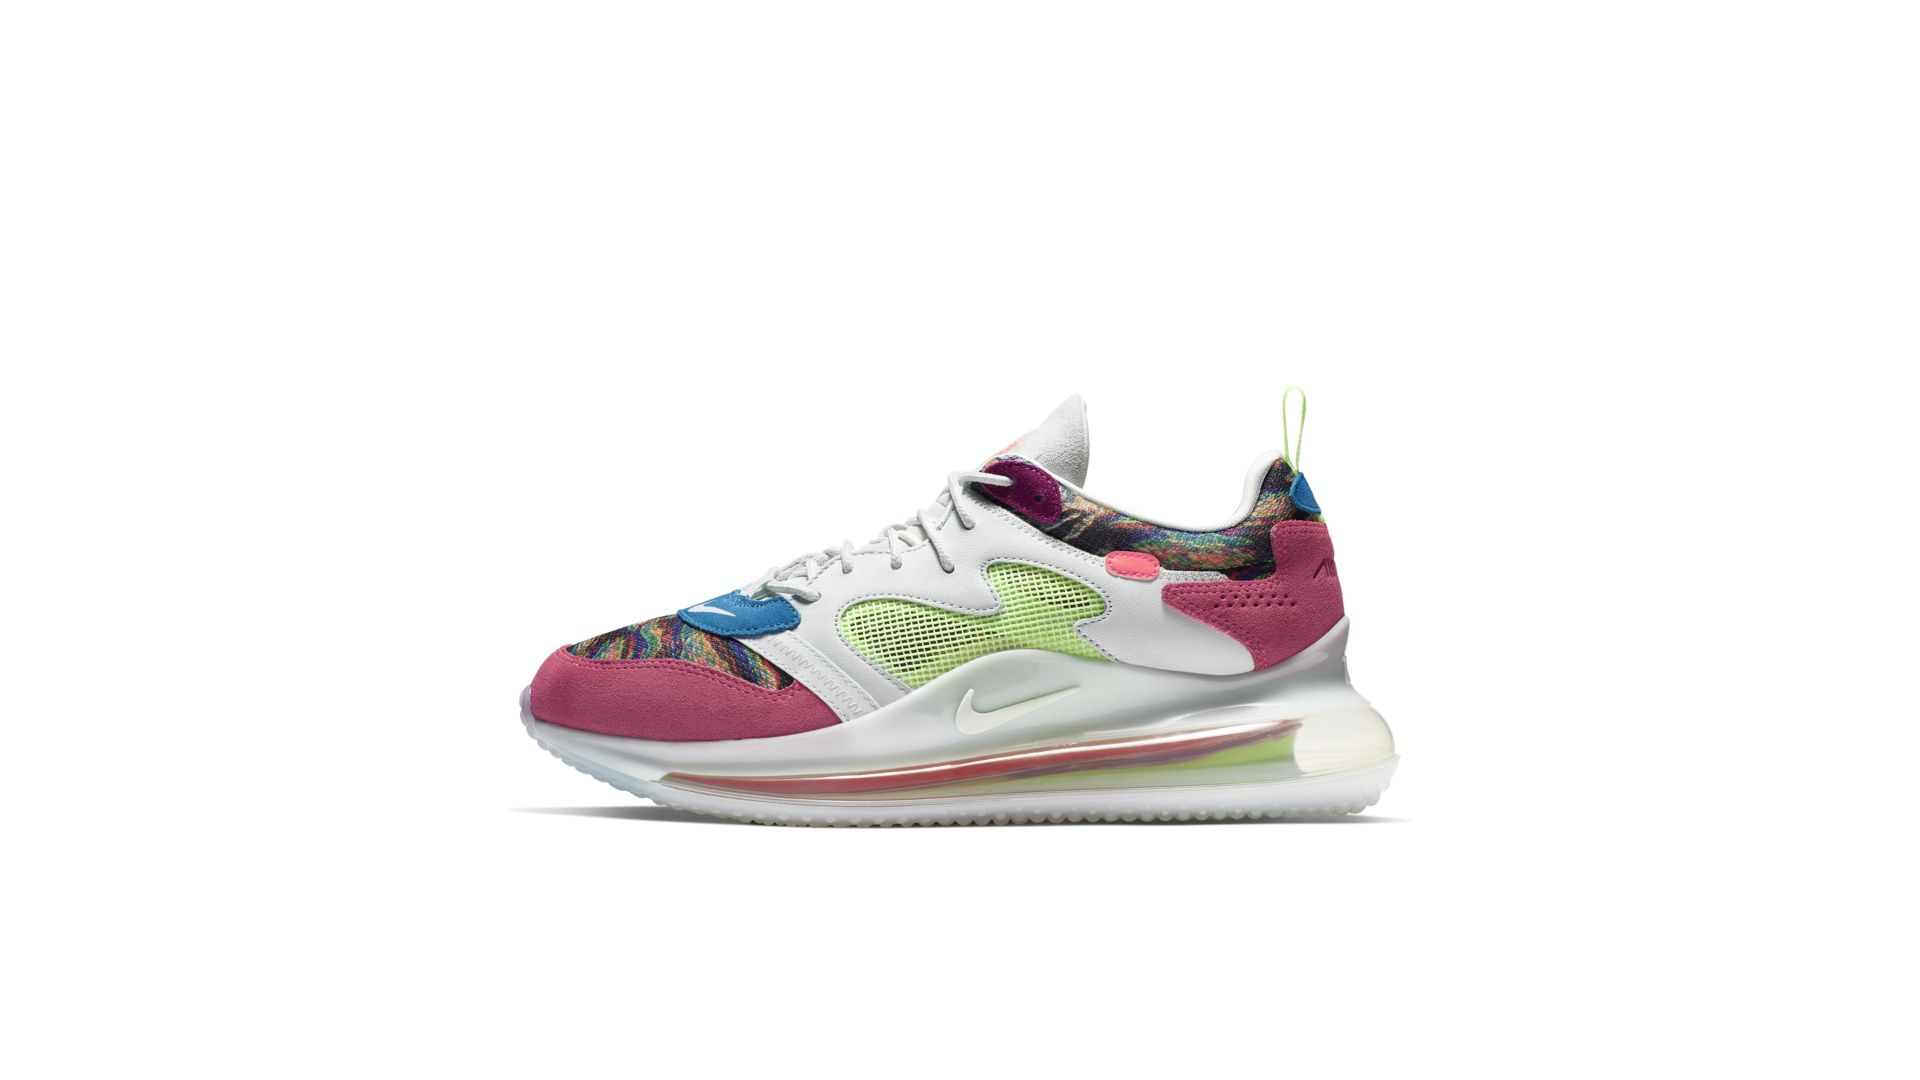 Nike Air Max 720 OBJ Odell Beckham Jr Young King of The Drip (CK2531-900)